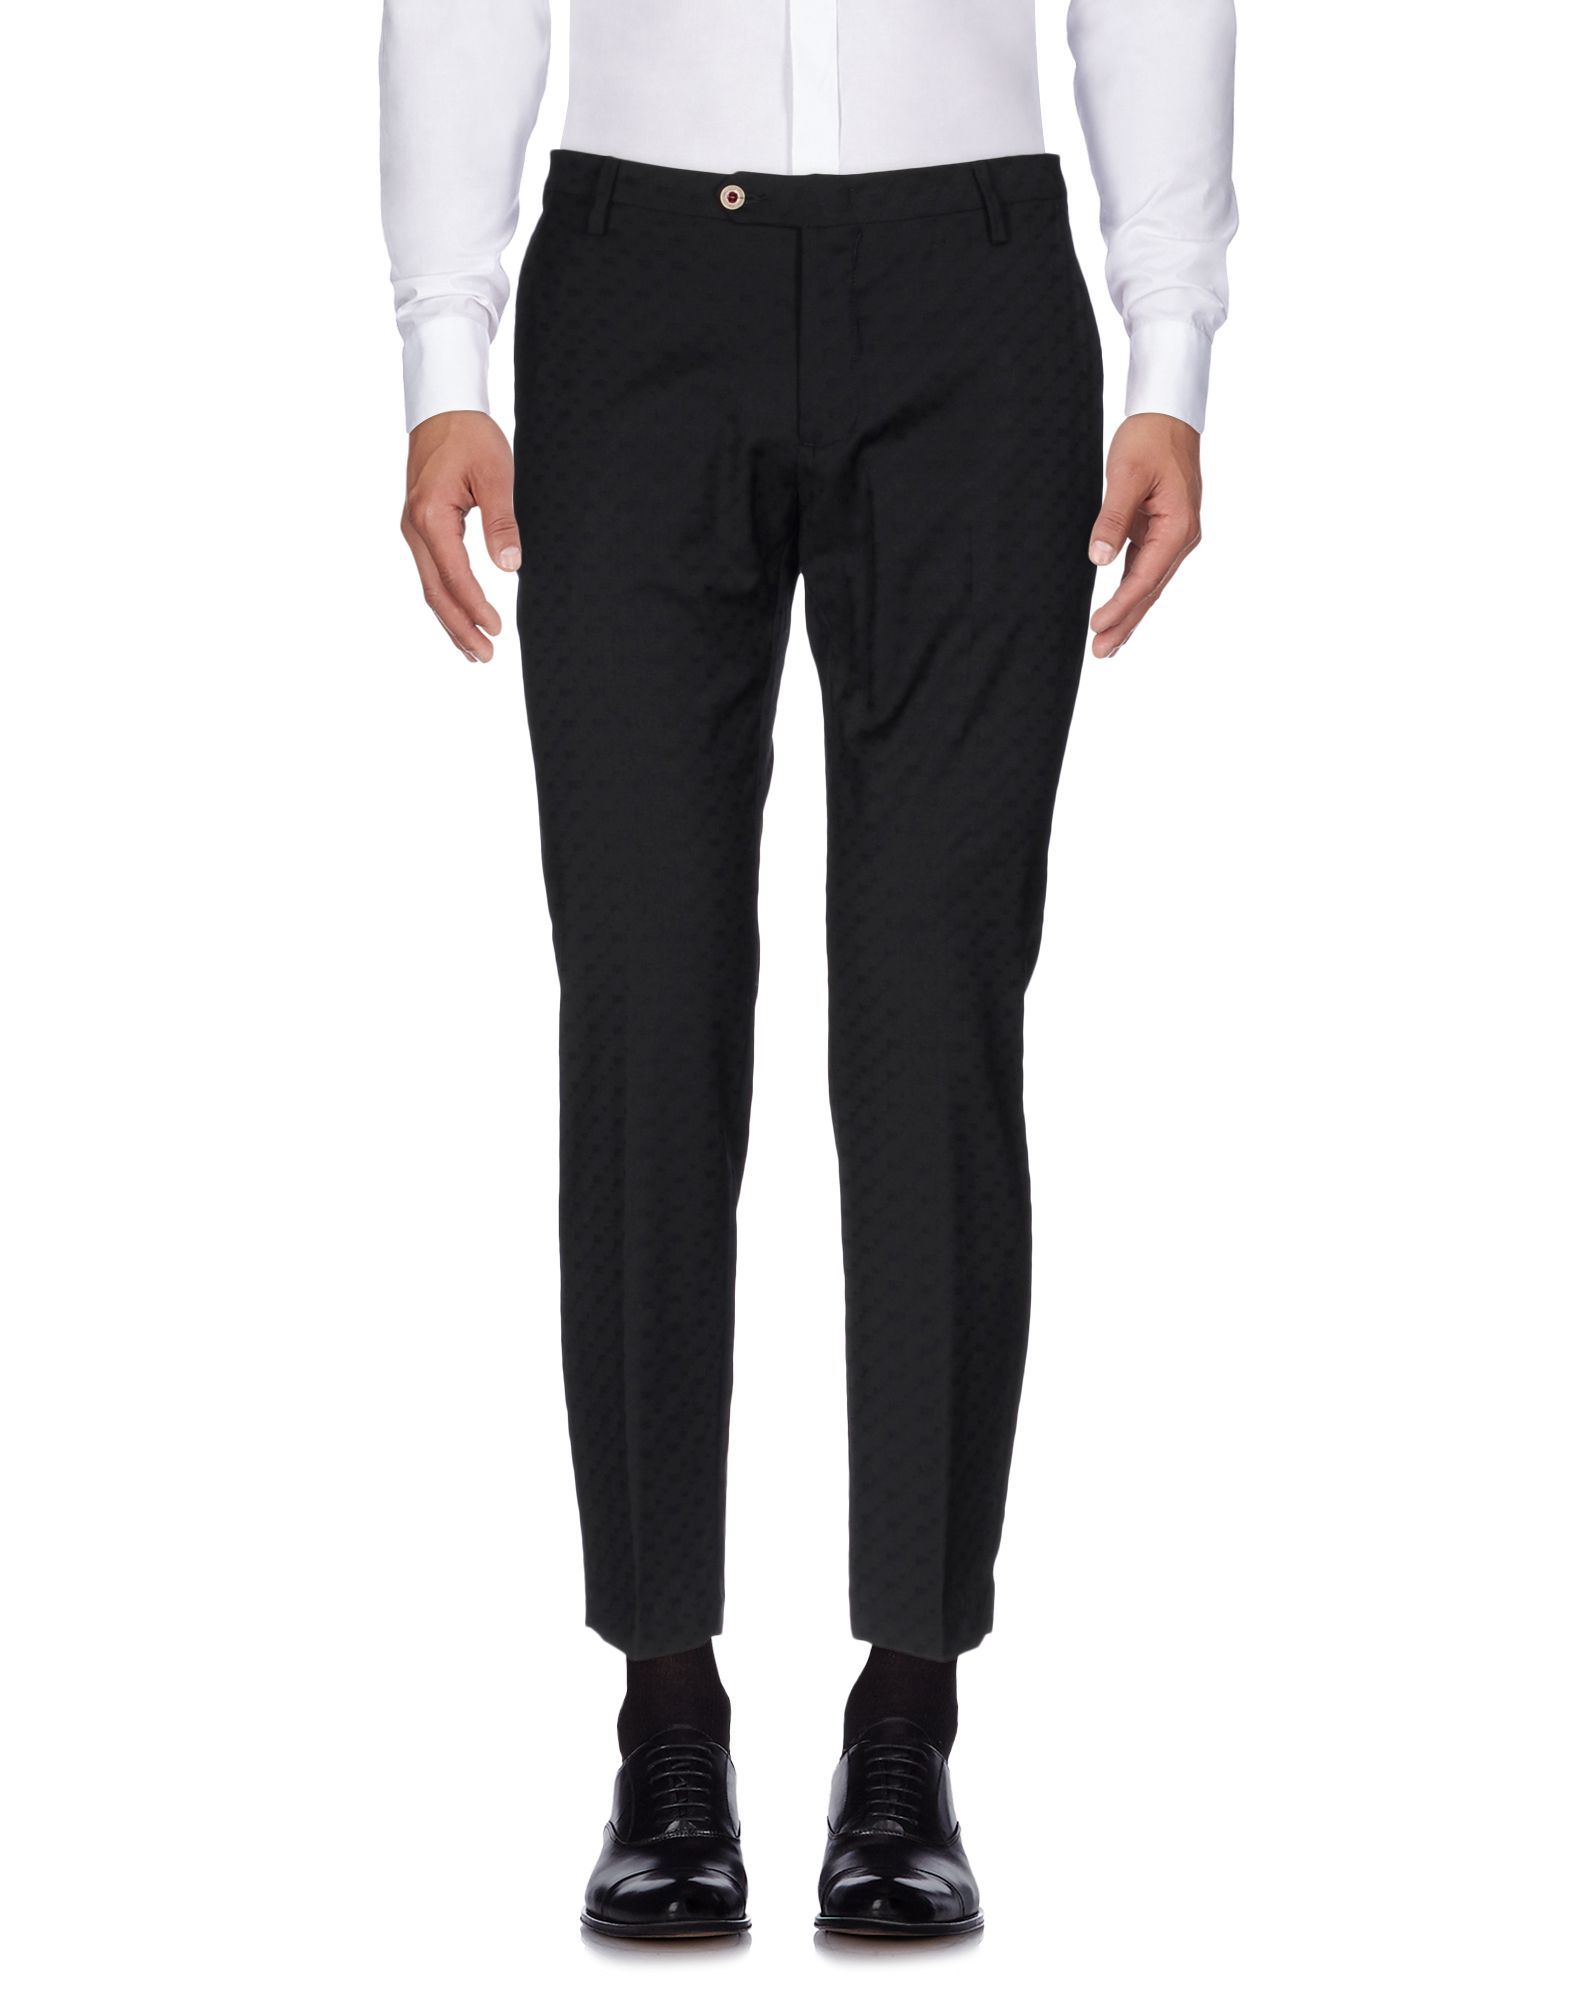 Pantalone Michael Coal Uomo - Acquista online su